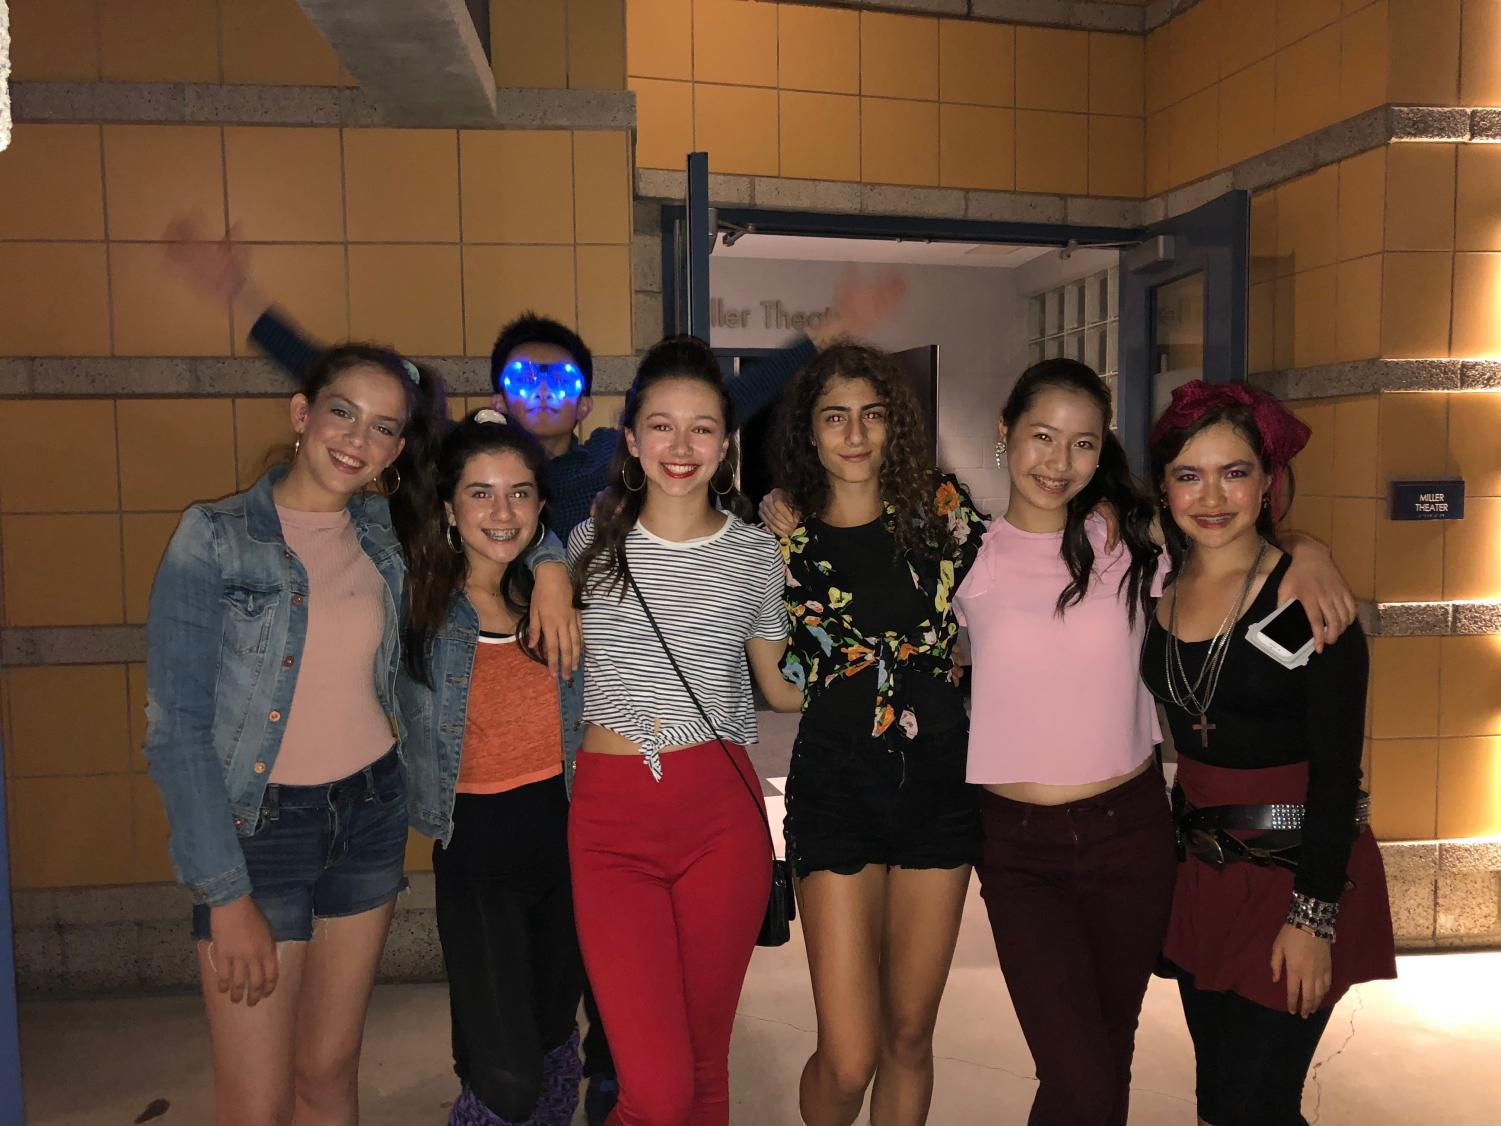 Ethan Wong '21 photobombs Ella Johannes '21, Maya Le '21, Madison Jaffrey '21, Silvia Ioannou '21, Elaine Cheng '21, and Claire Senft '21 as they pose for a picture at the Decade Dance.